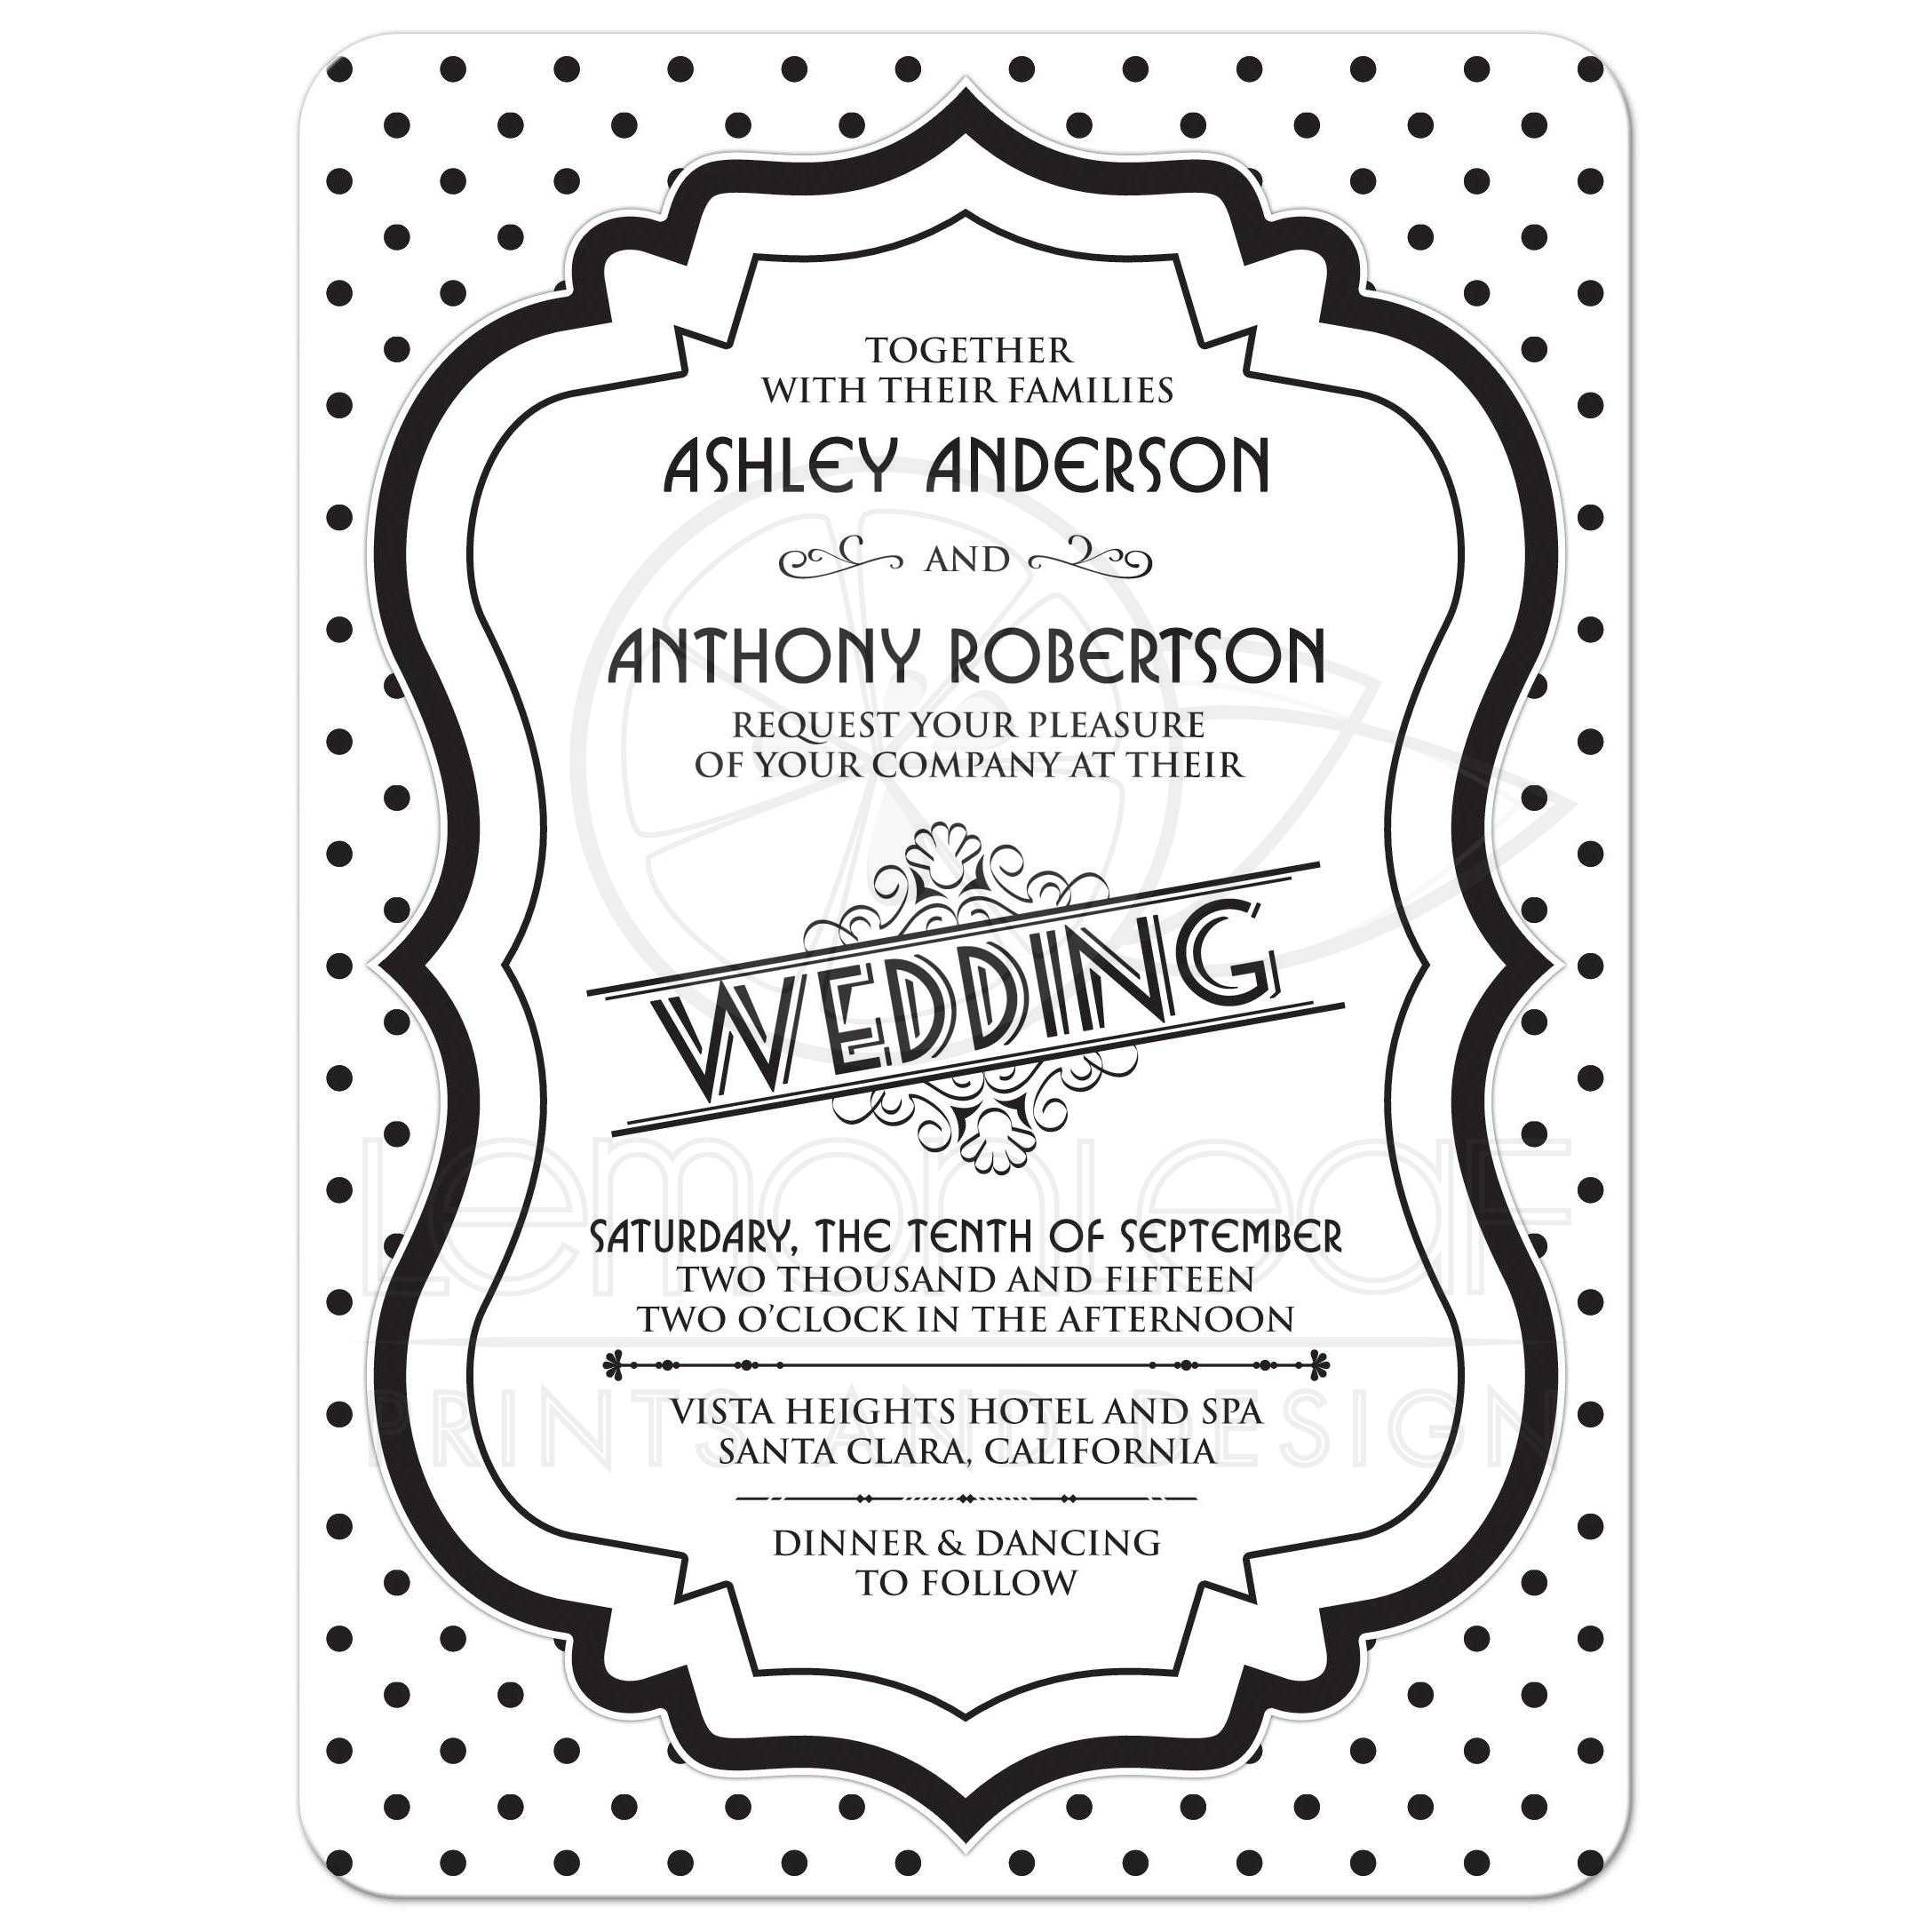 Wedding Invitation Retro 50s Black White Polka Dot